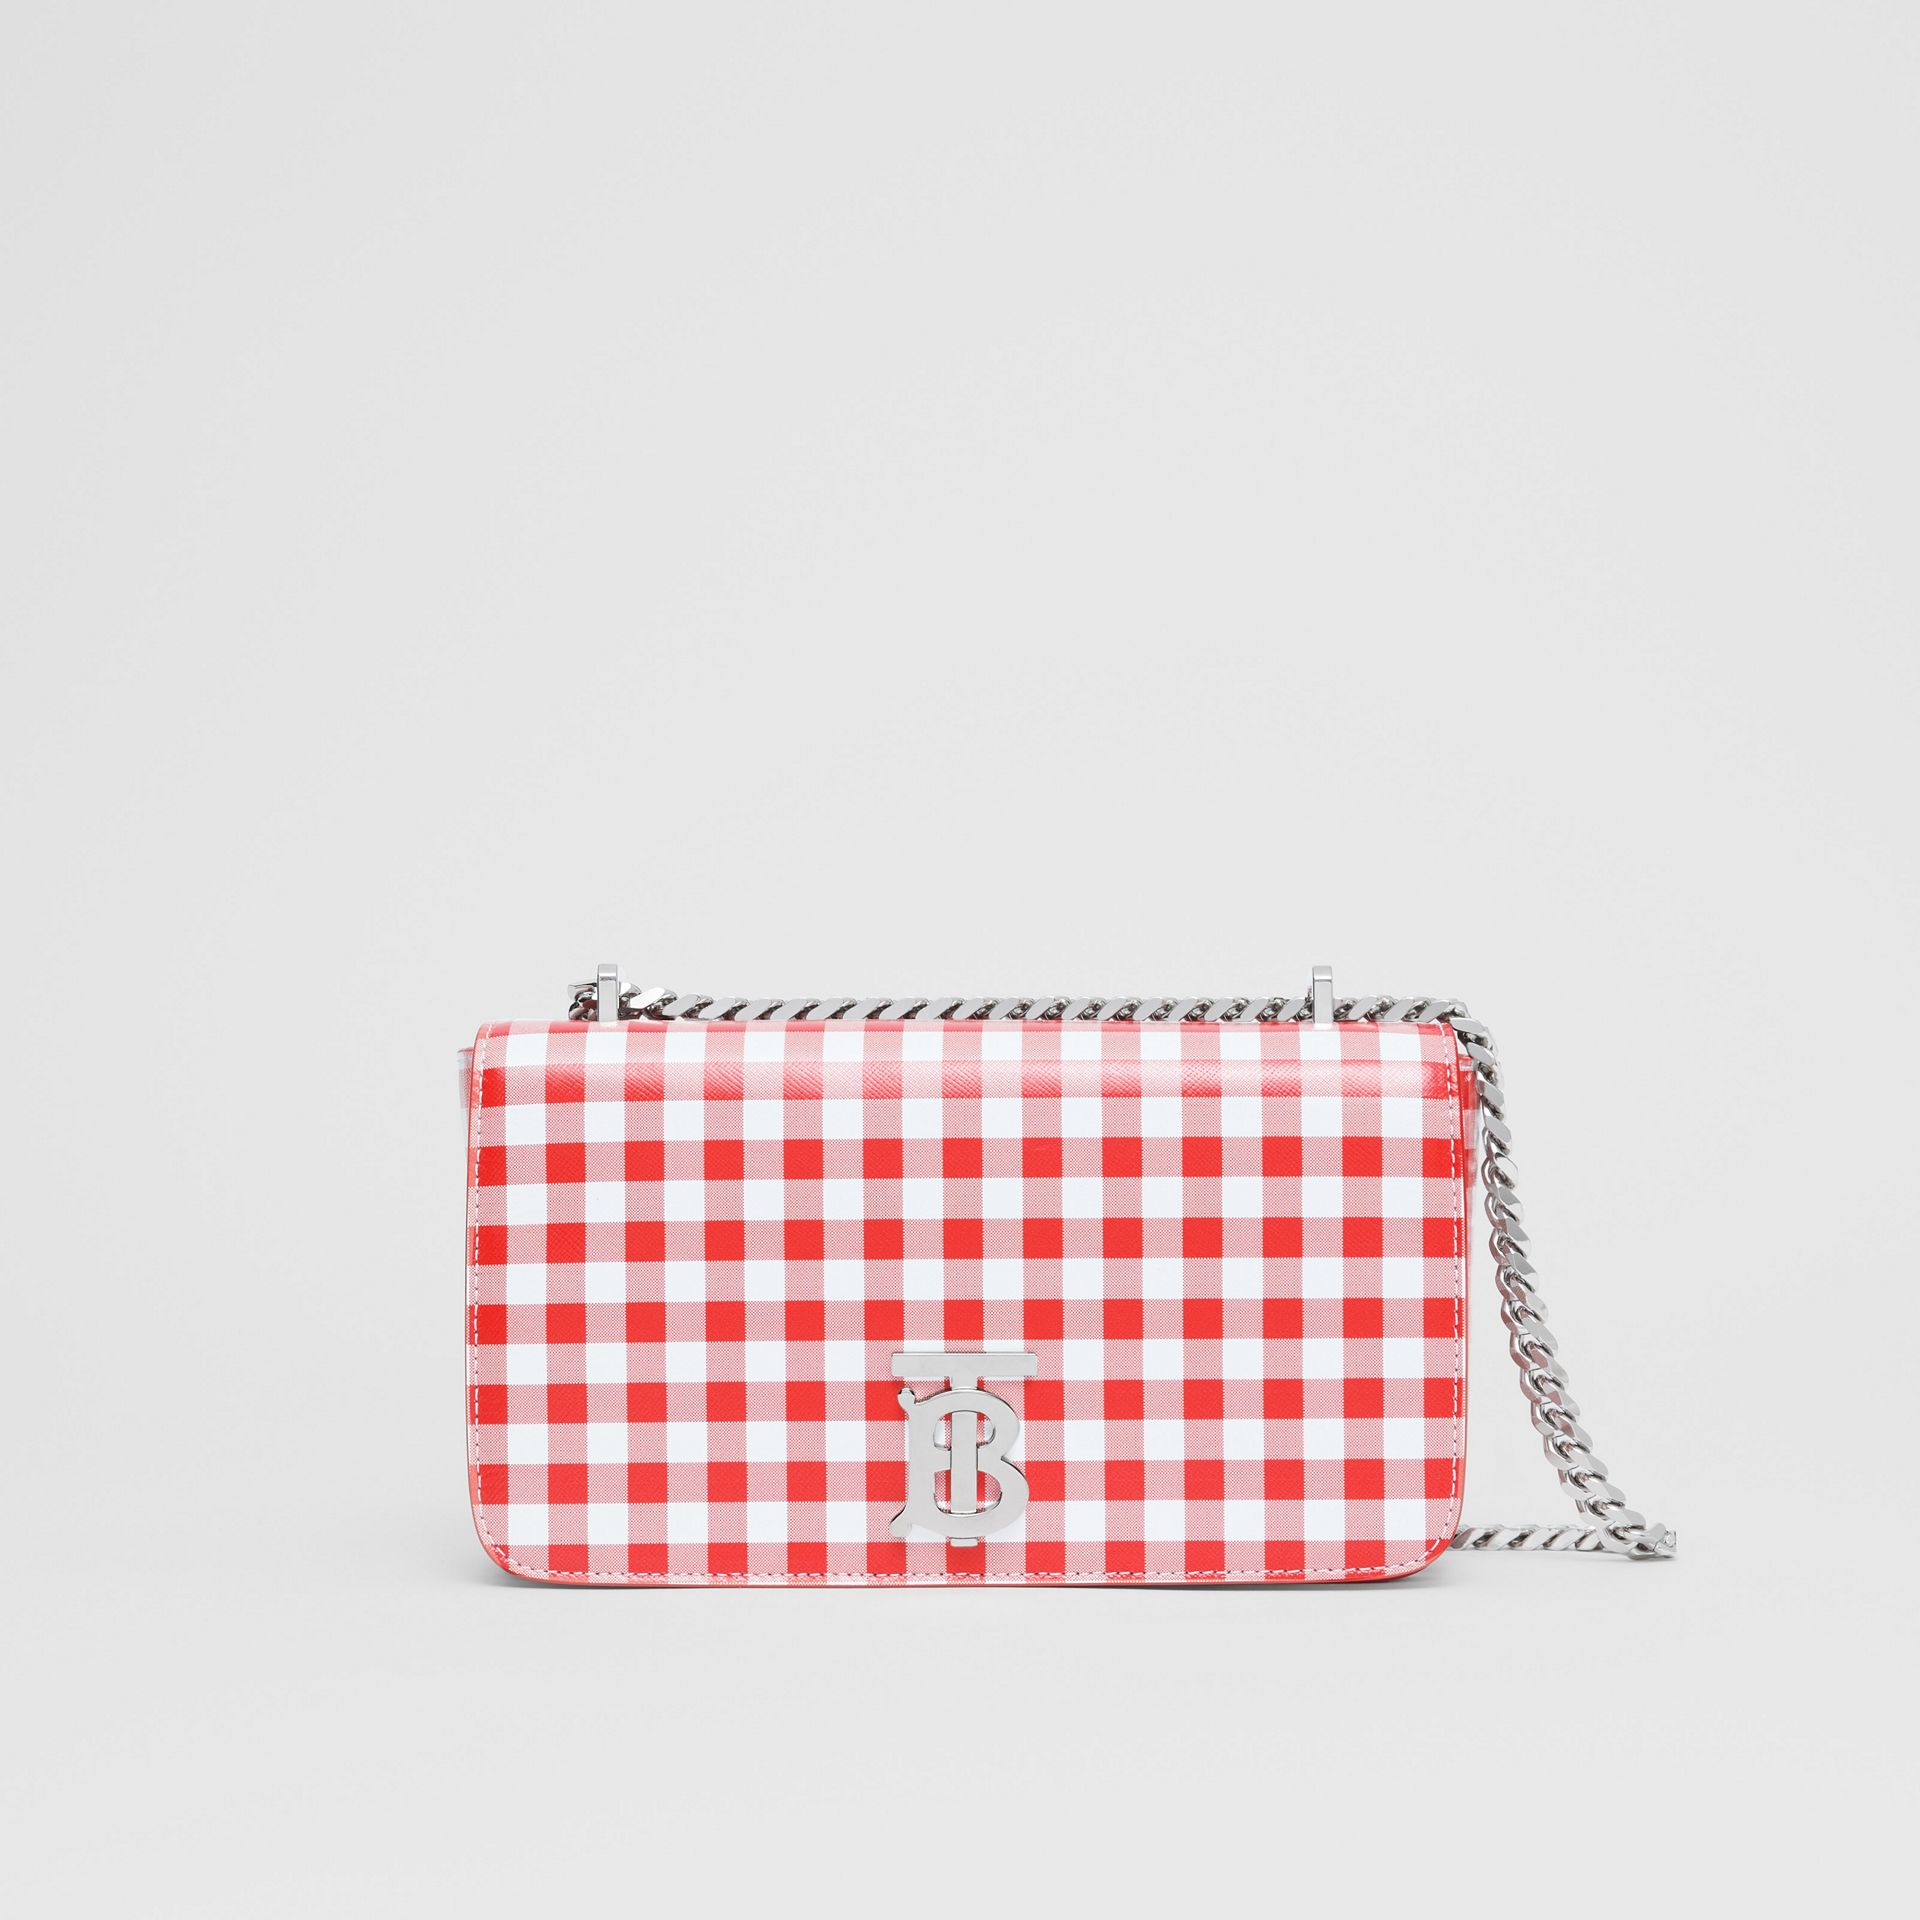 Small Gingham Leather Lola Bag in Red - Women | Burberry - gallery image 0